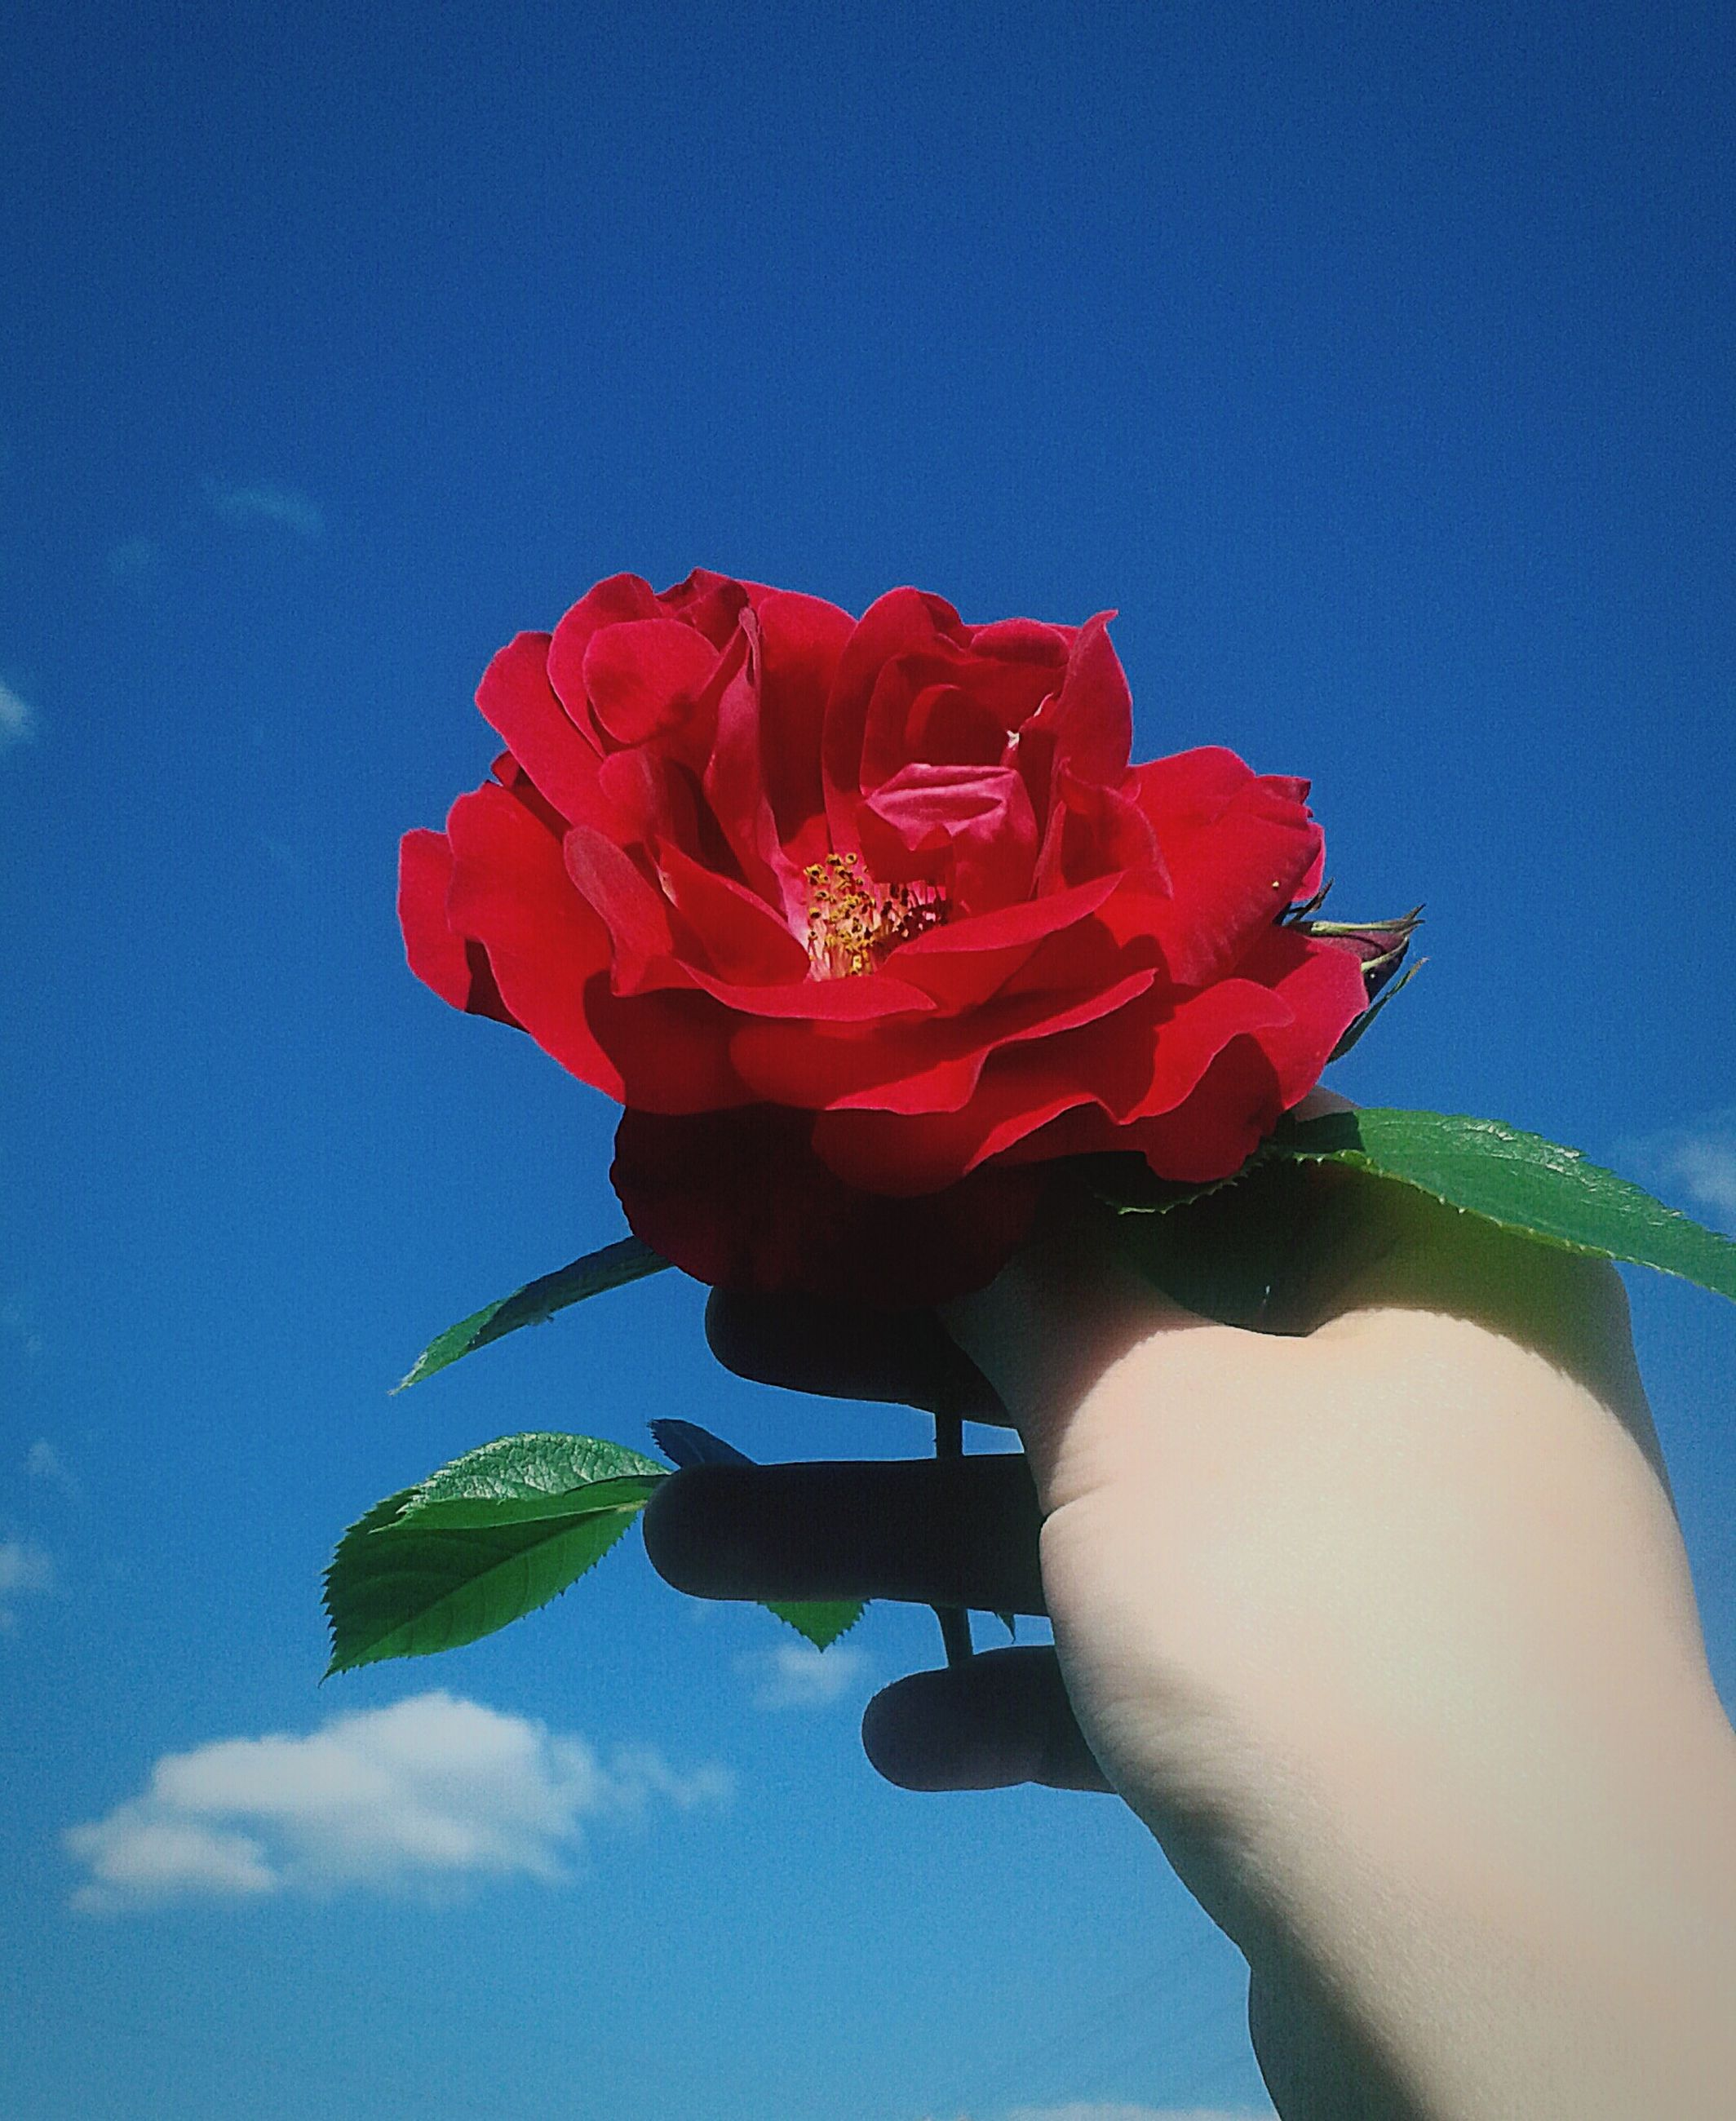 flower, human hand, one person, red, human body part, sky, petal, holding, adults only, people, cloud - sky, close-up, flower head, fragility, adult, freshness, beauty in nature, nature, outdoors, one woman only, day, only women